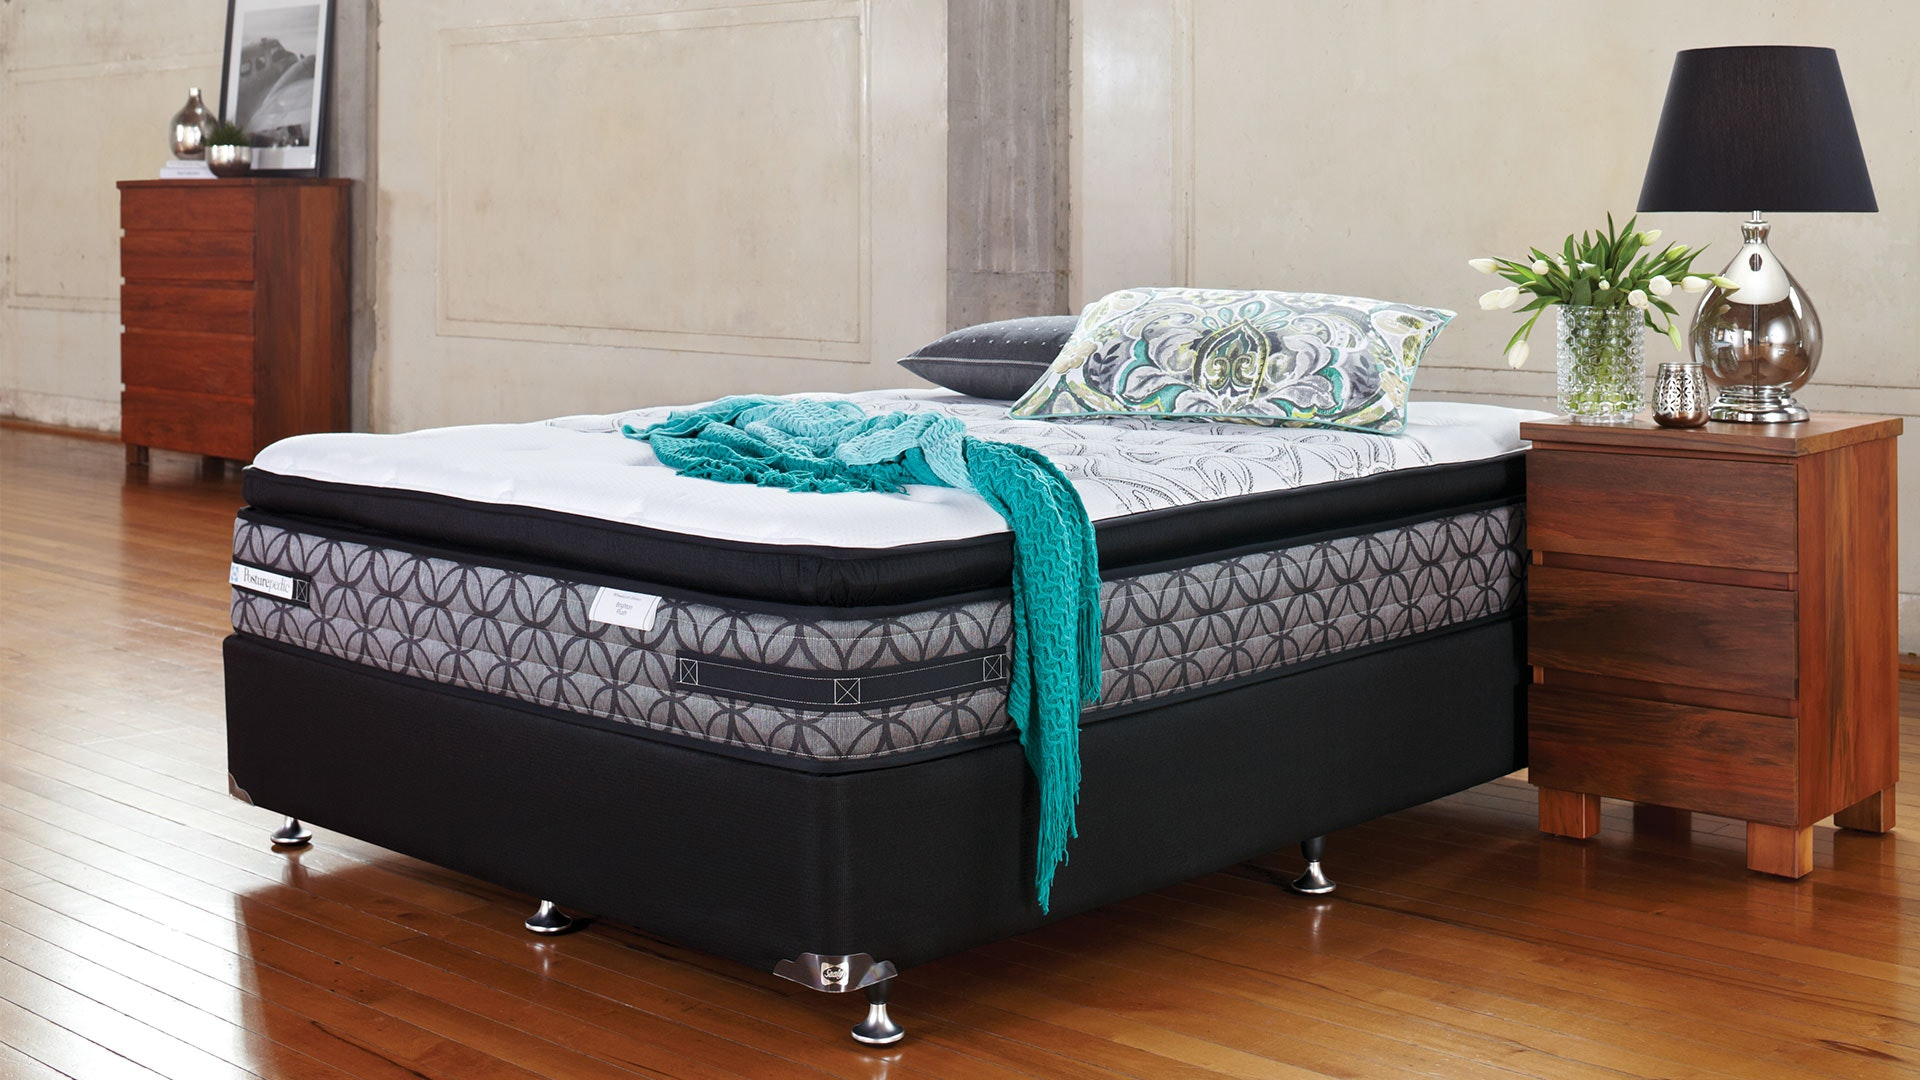 Brighton Plush King Single Bed by Sealy Posturepedic